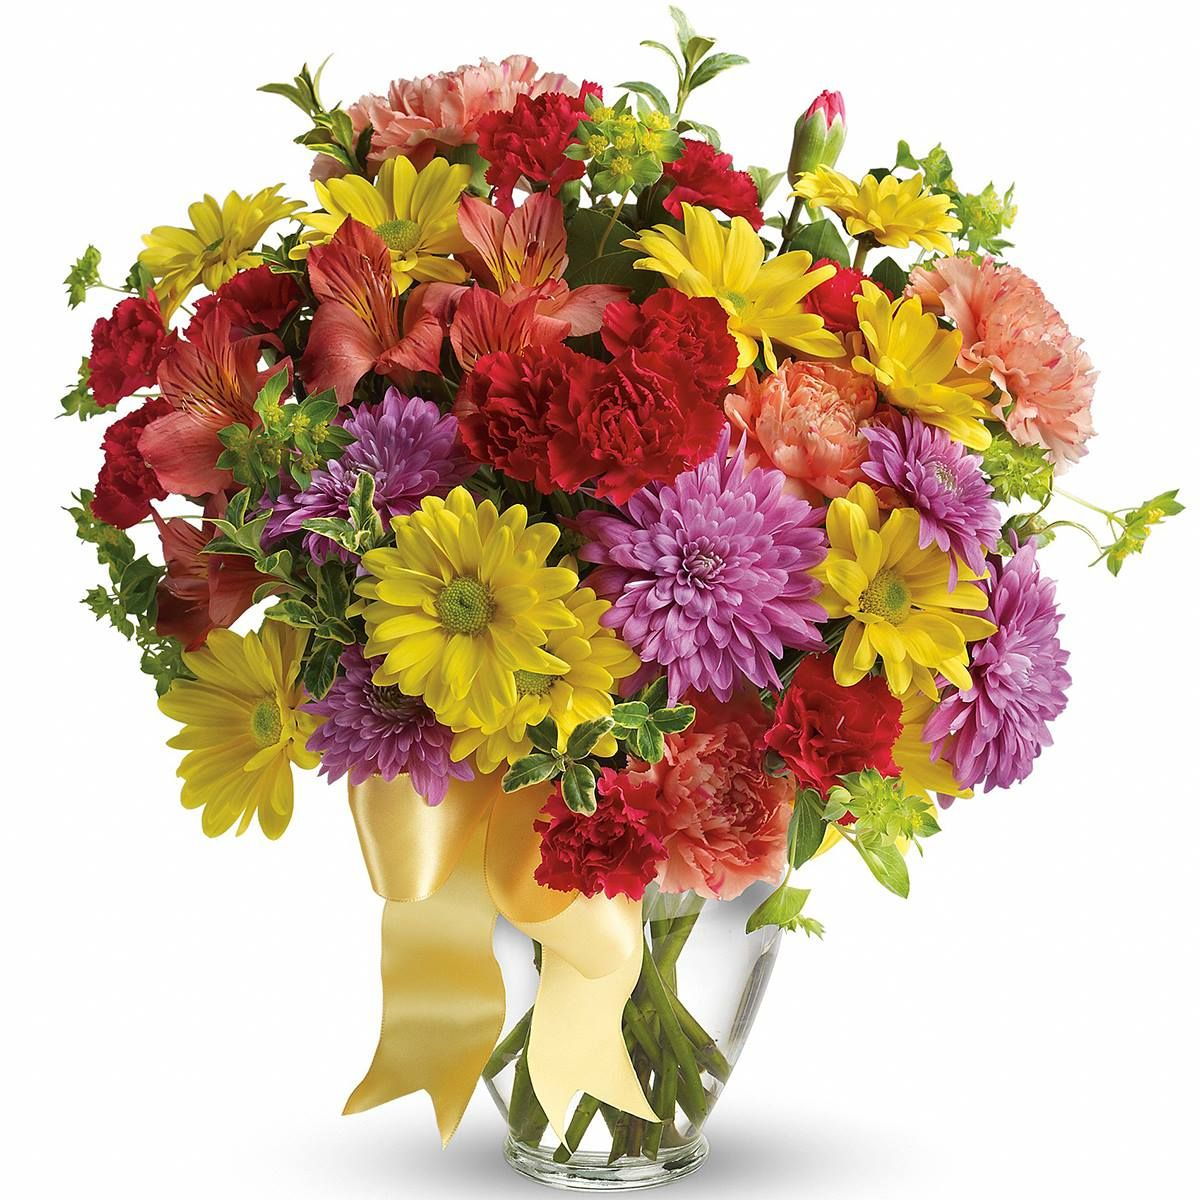 A bouquet sure to add color to anyone's day that includes